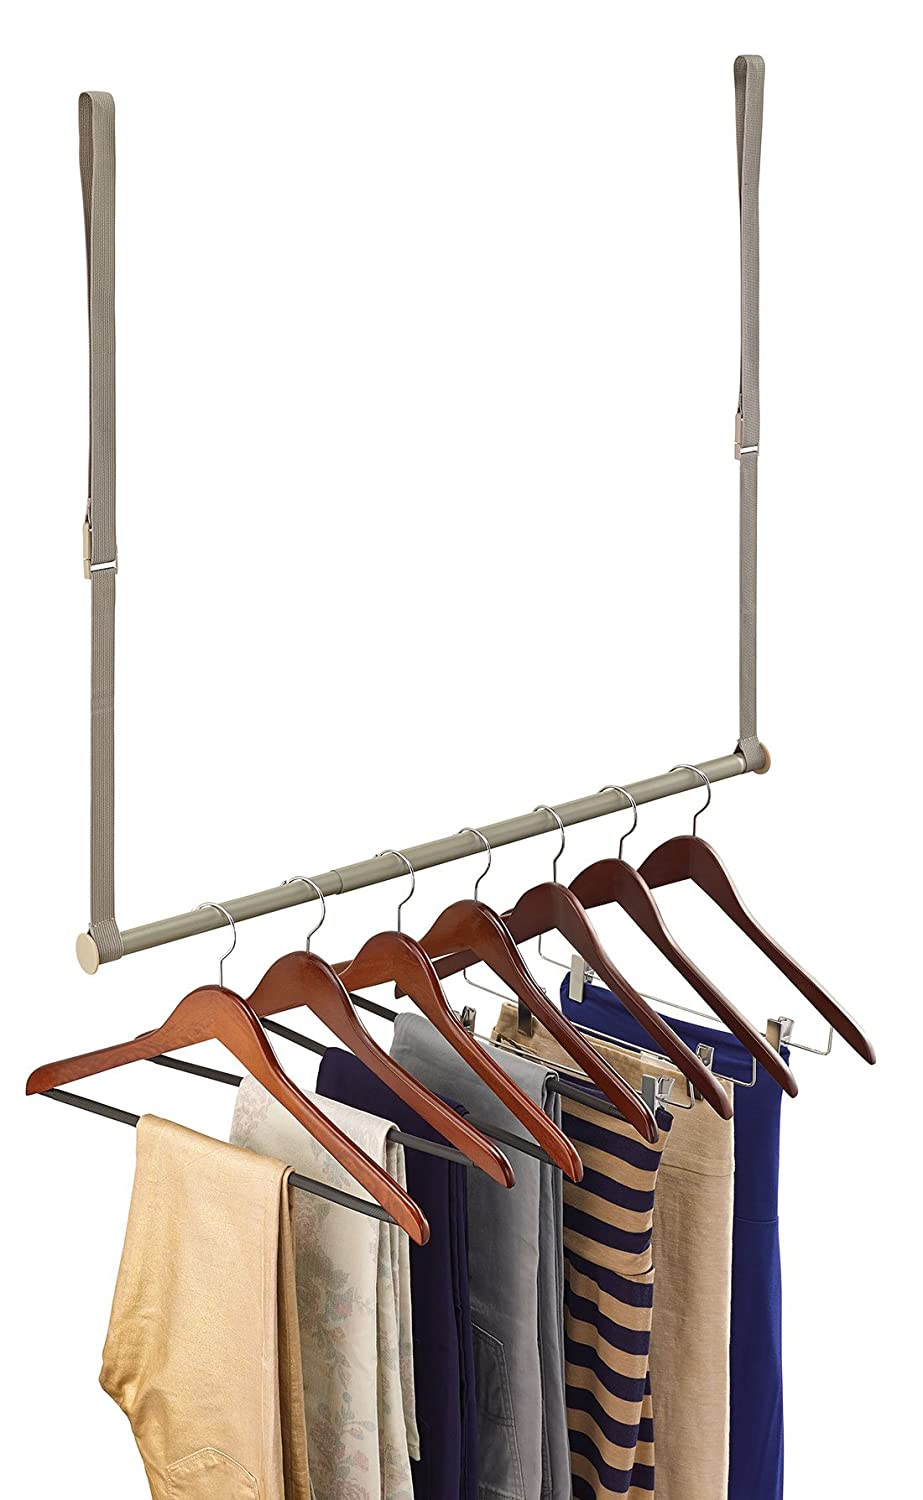 Amazon.com: ClosetMaid 31220 Double Hang Closet Rod, Nickel: Home U0026 Kitchen